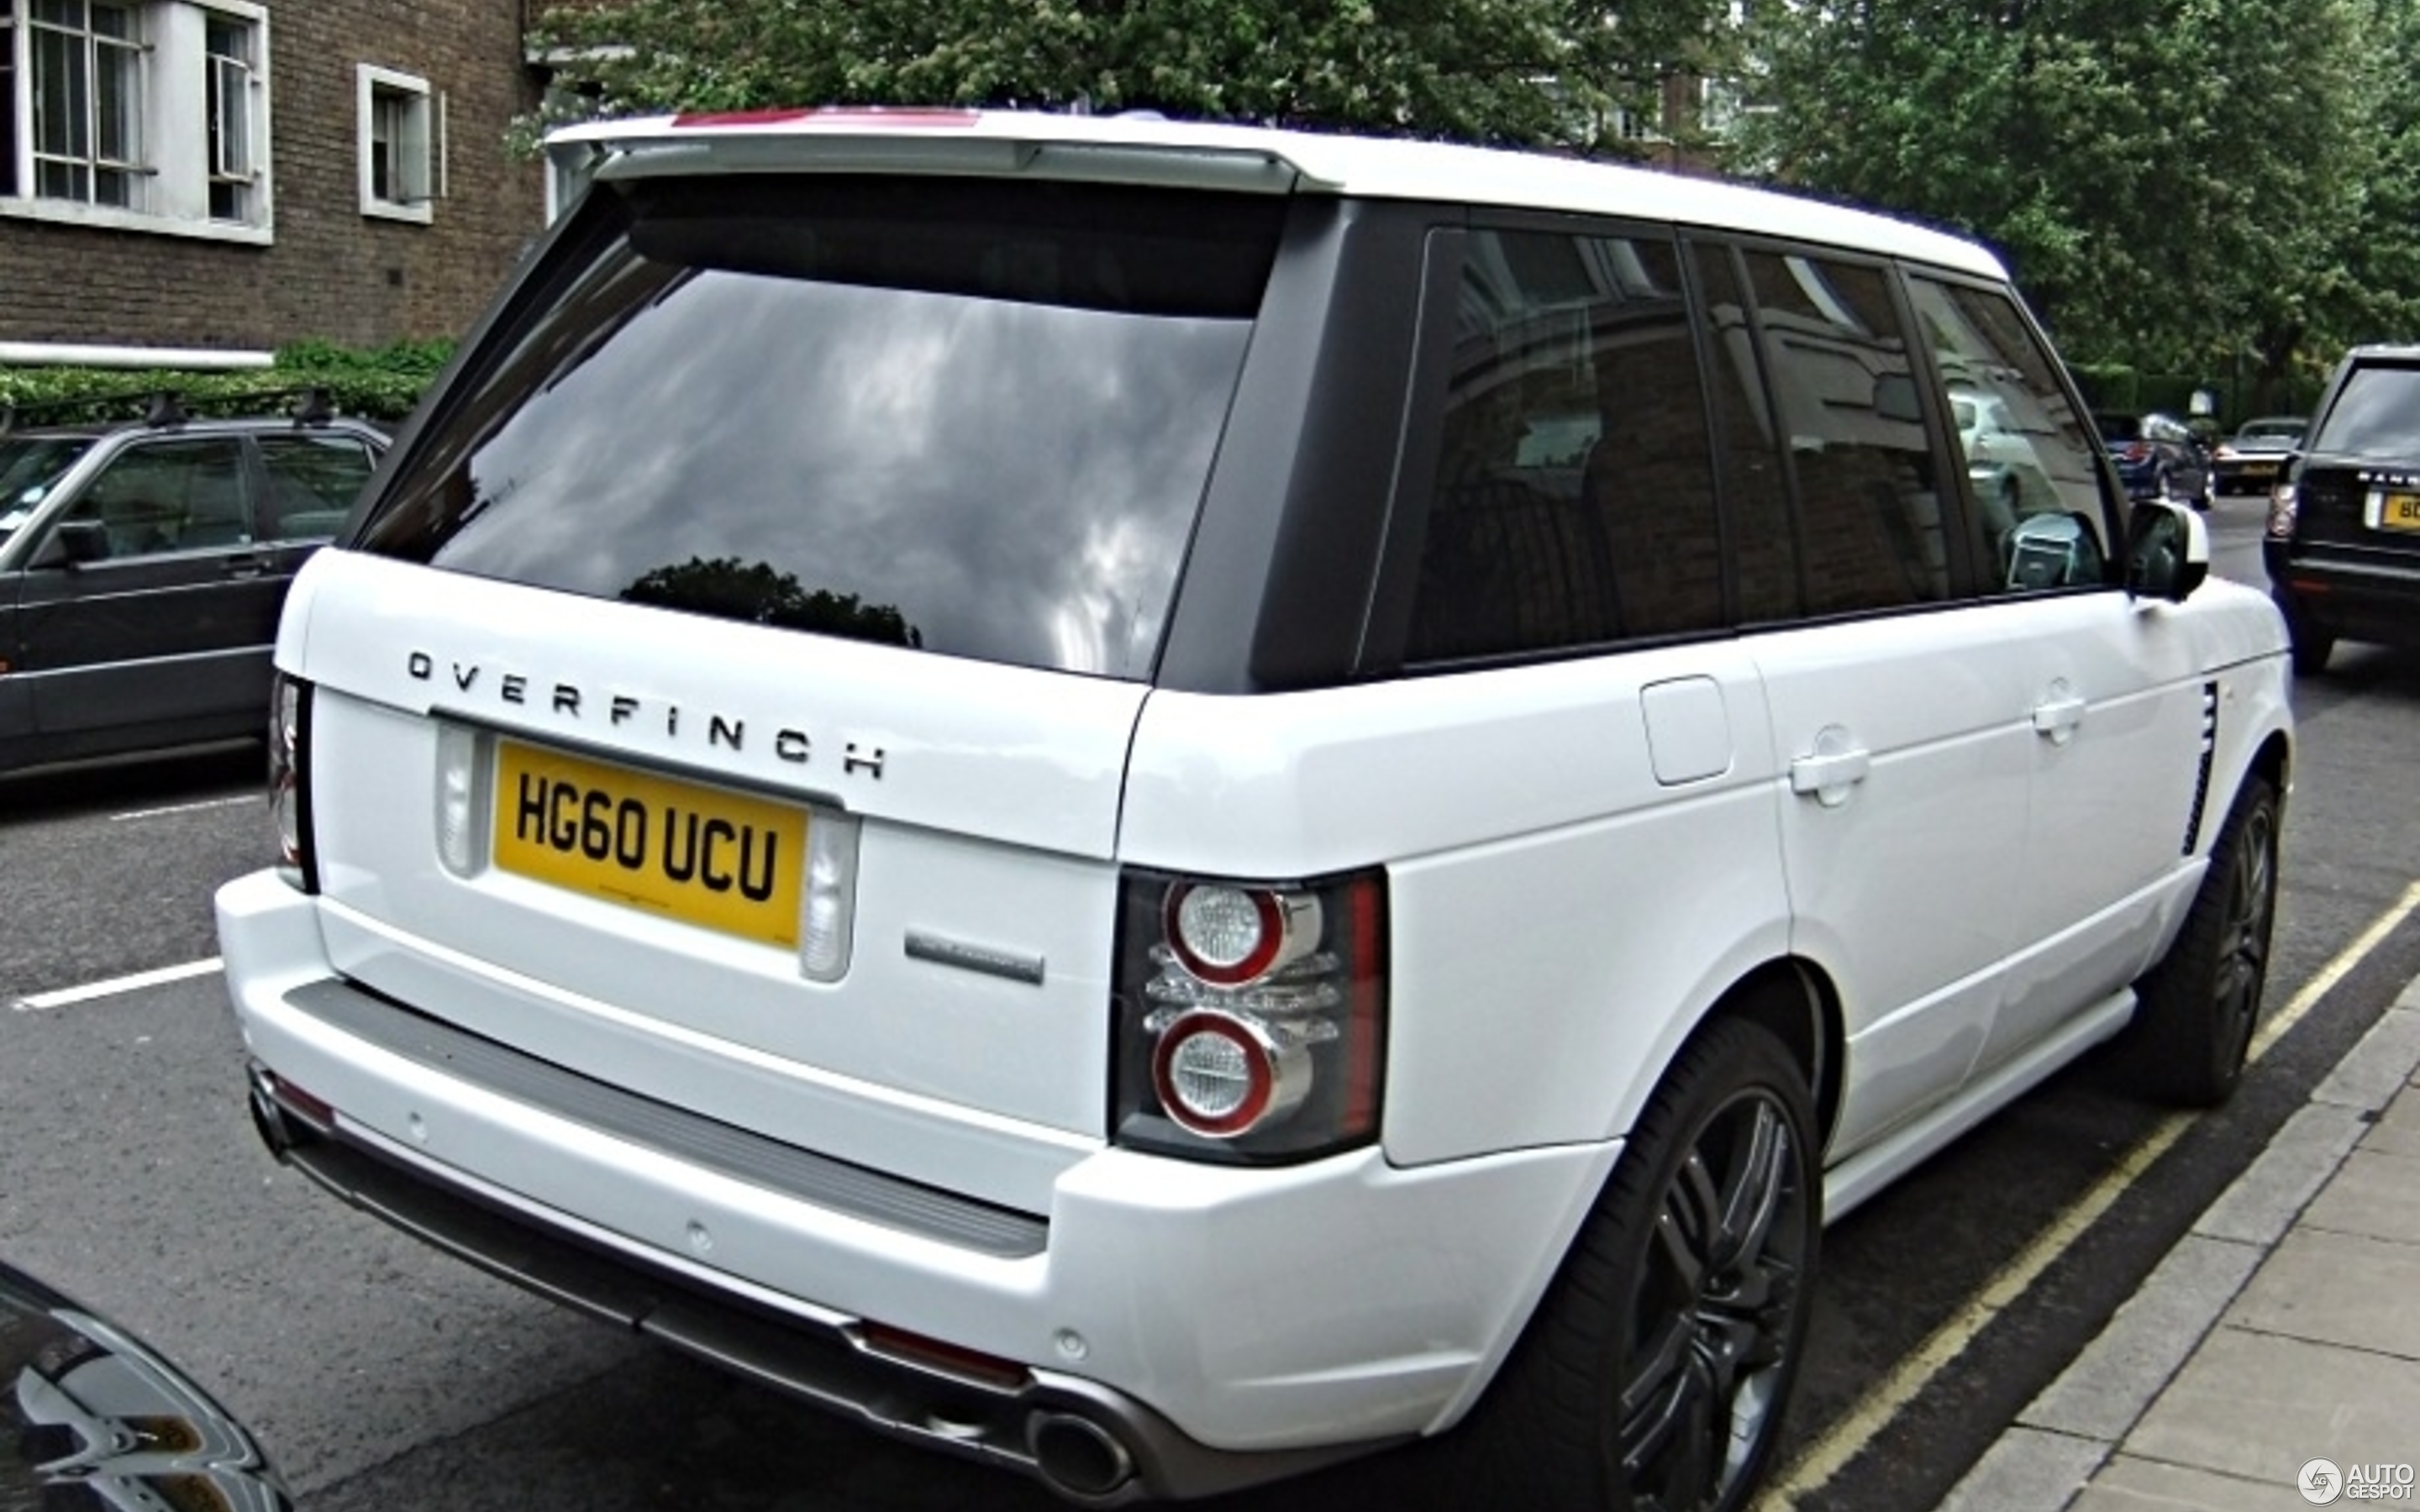 Range Rover Autobiography 2016 >> Land Rover Overfinch Range Rover Autobiography - 8 May ...